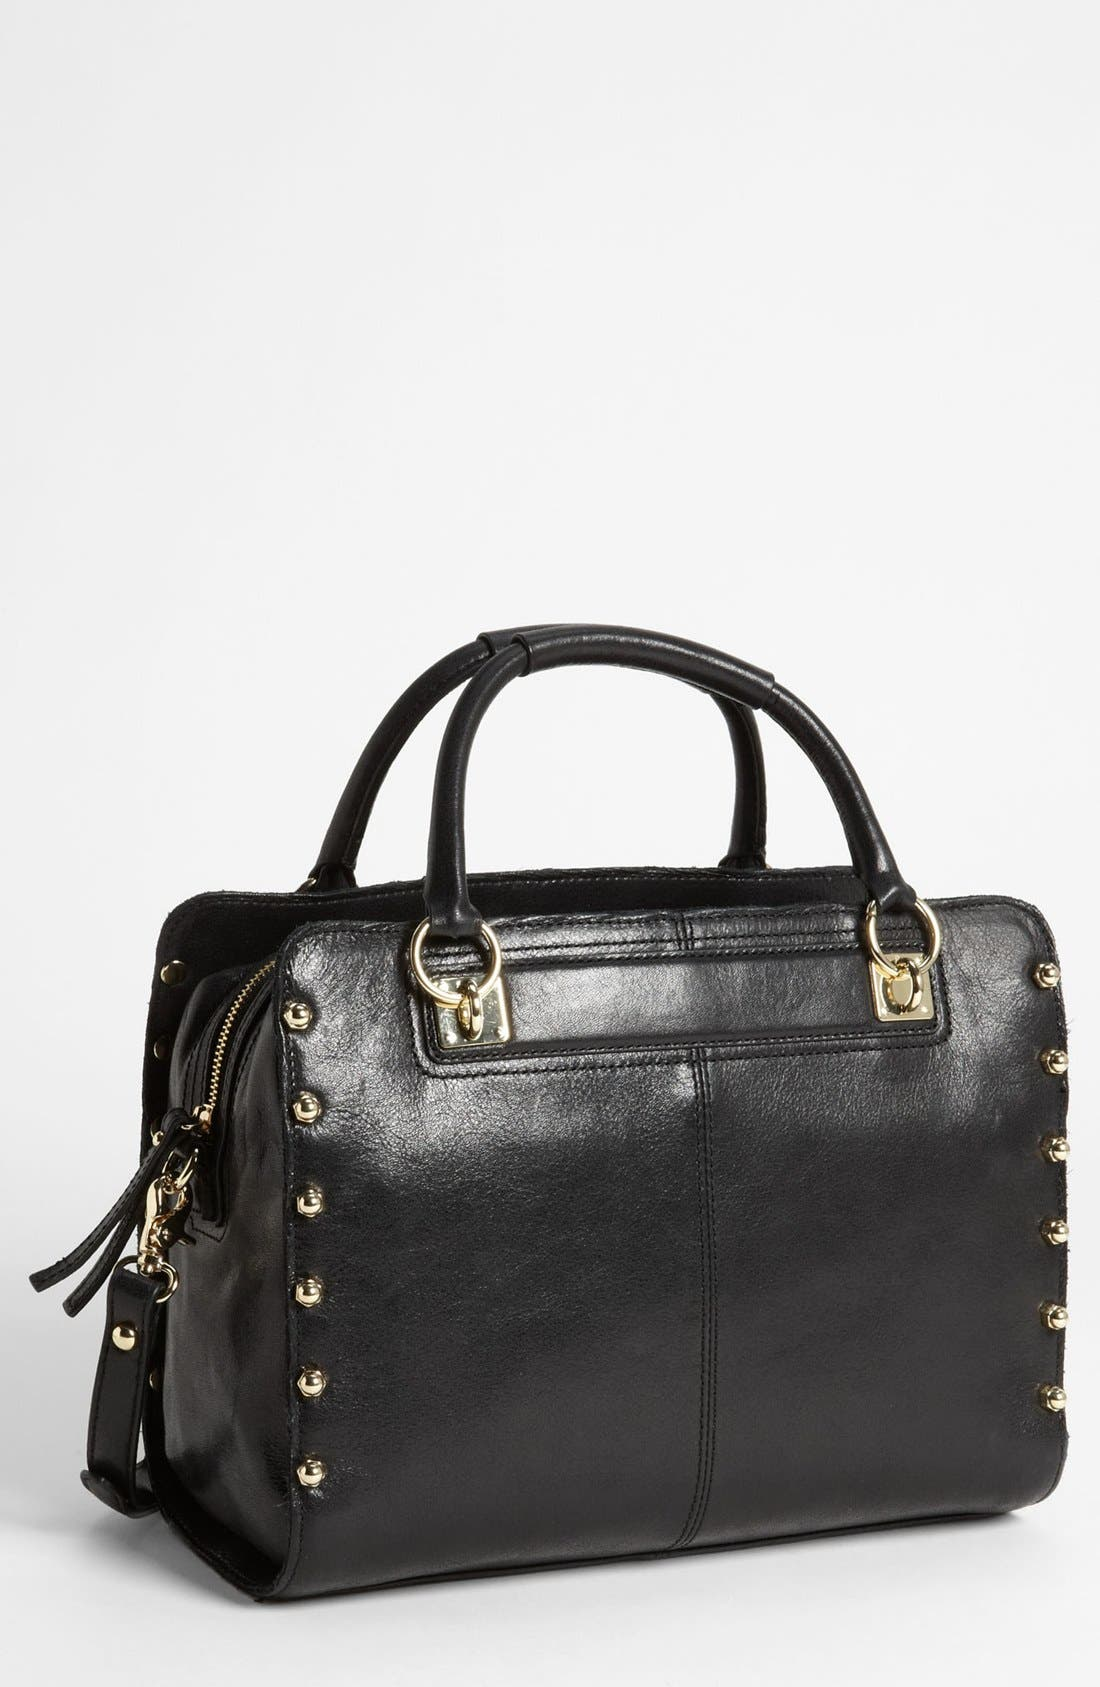 Alternate Image 1 Selected - Vince Camuto 'Bolts' Satchel